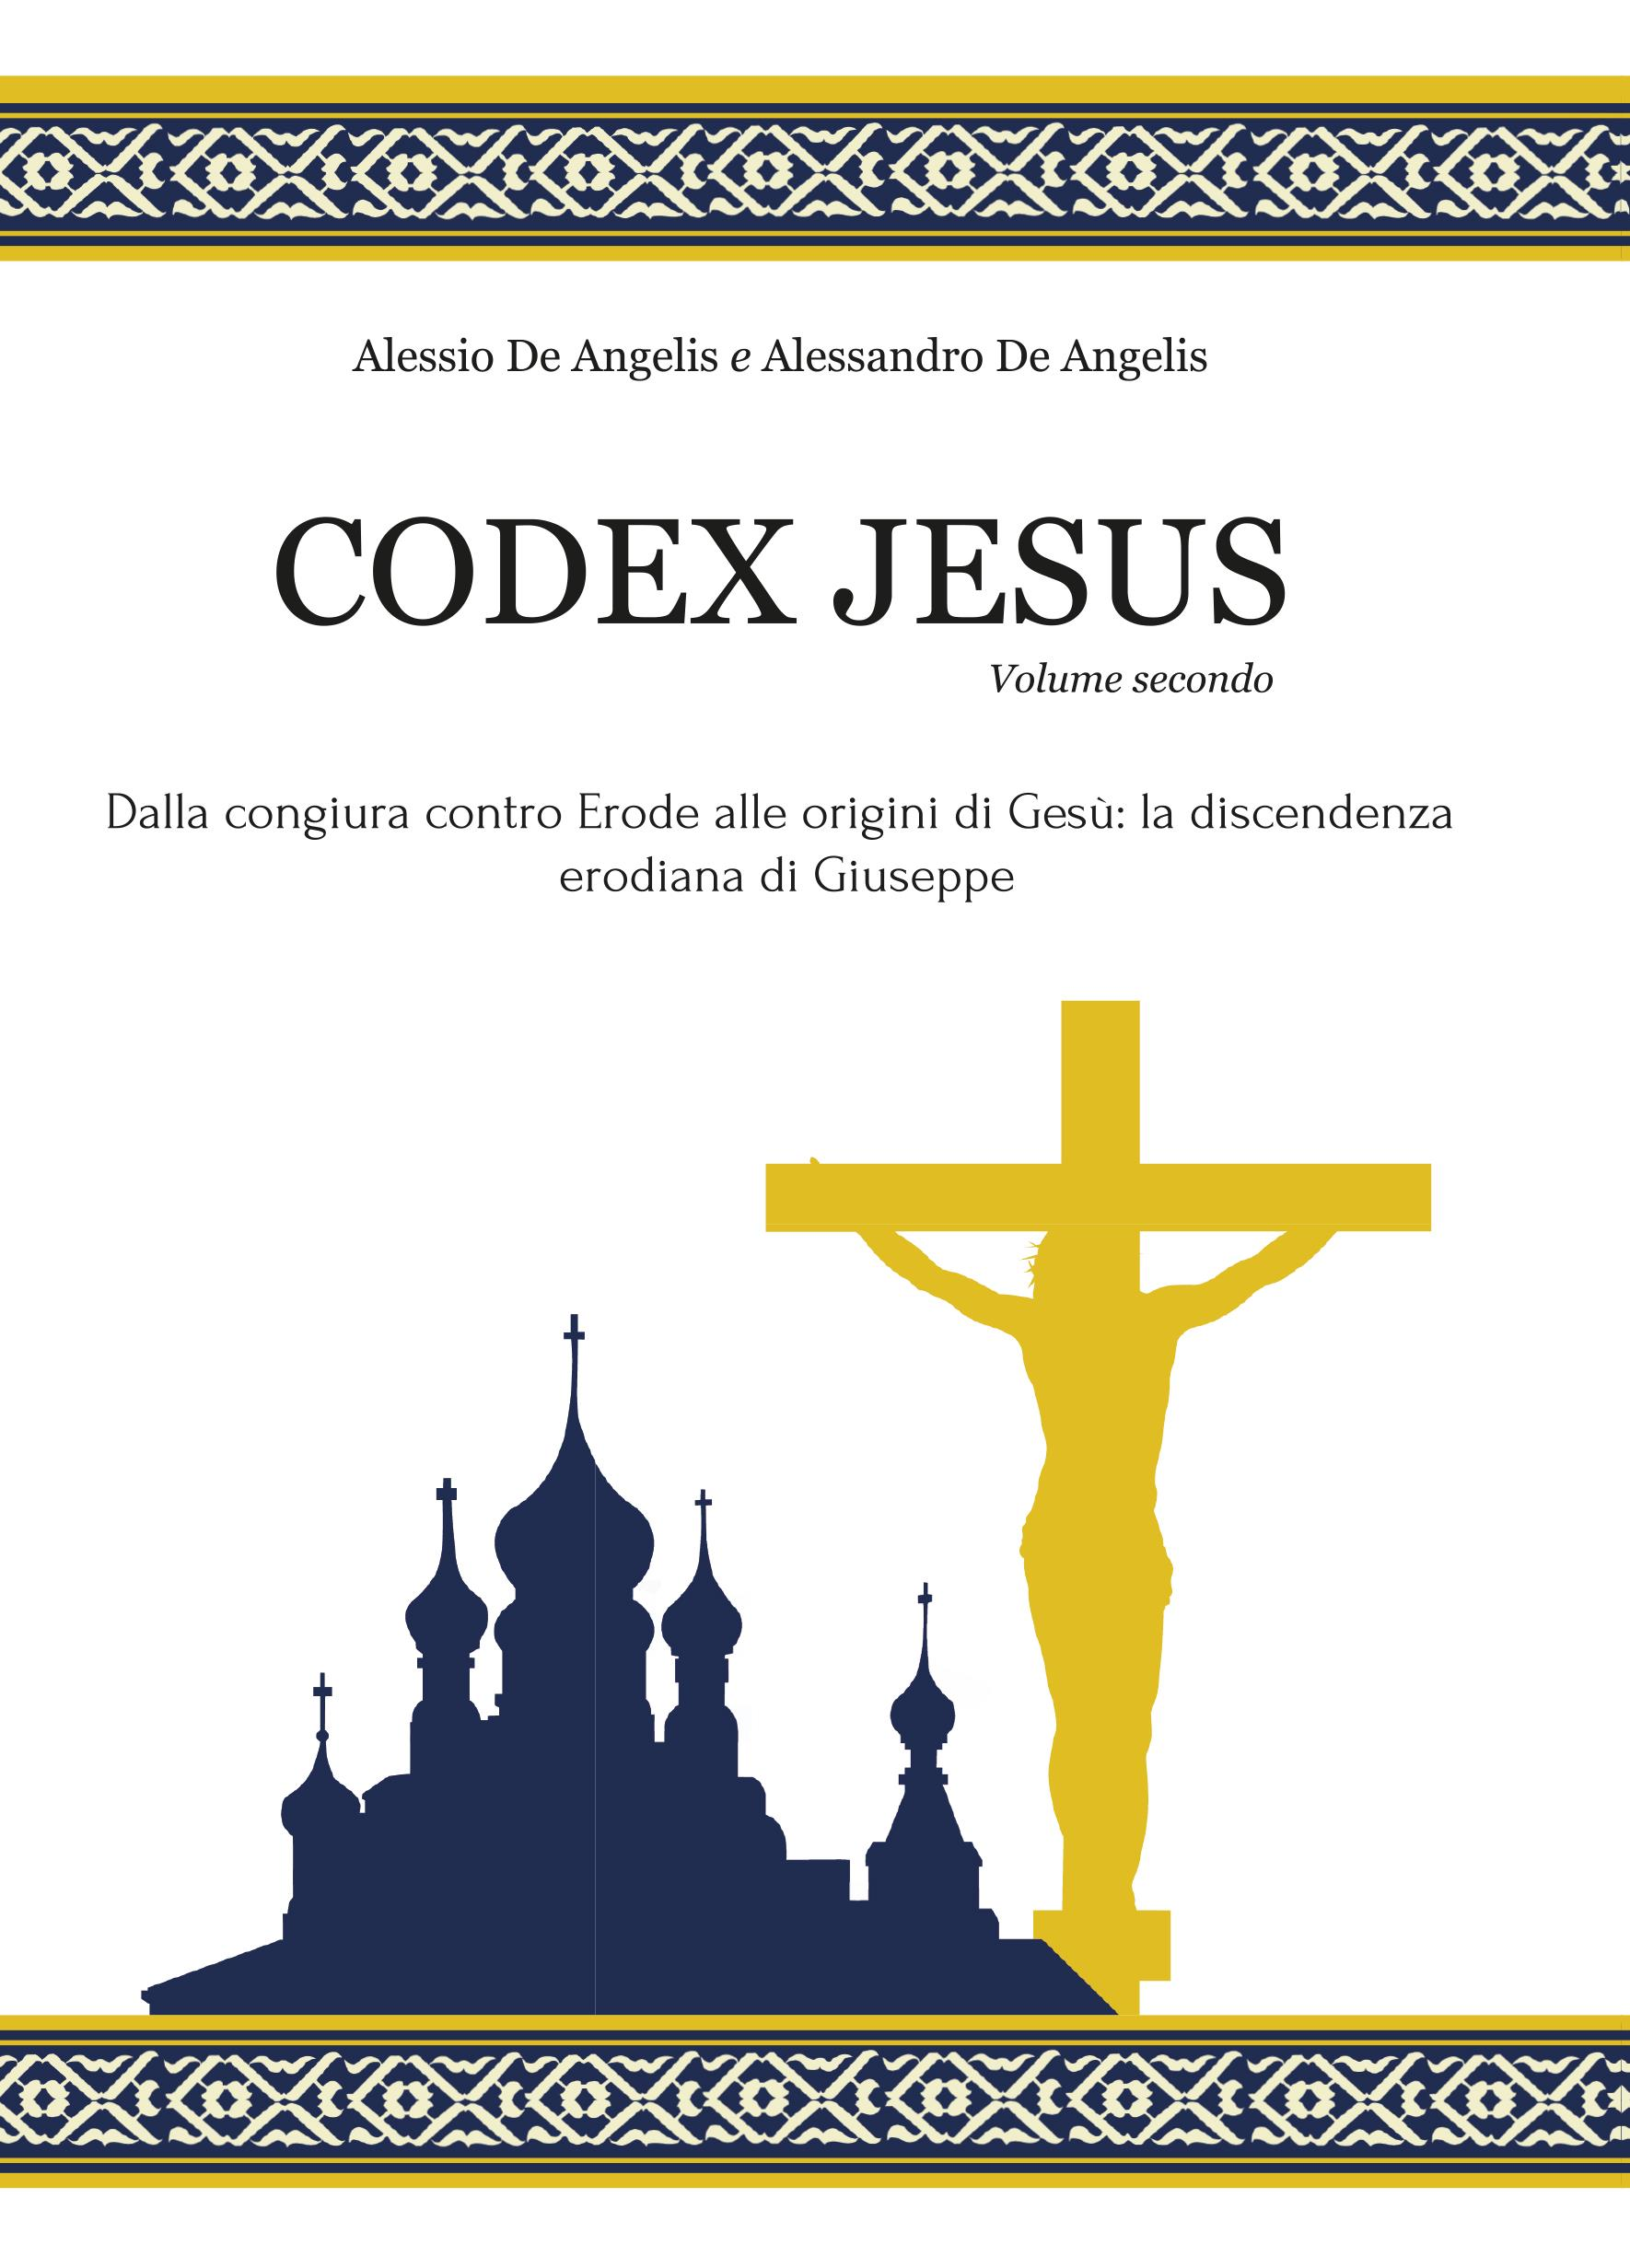 Codex Jesus II